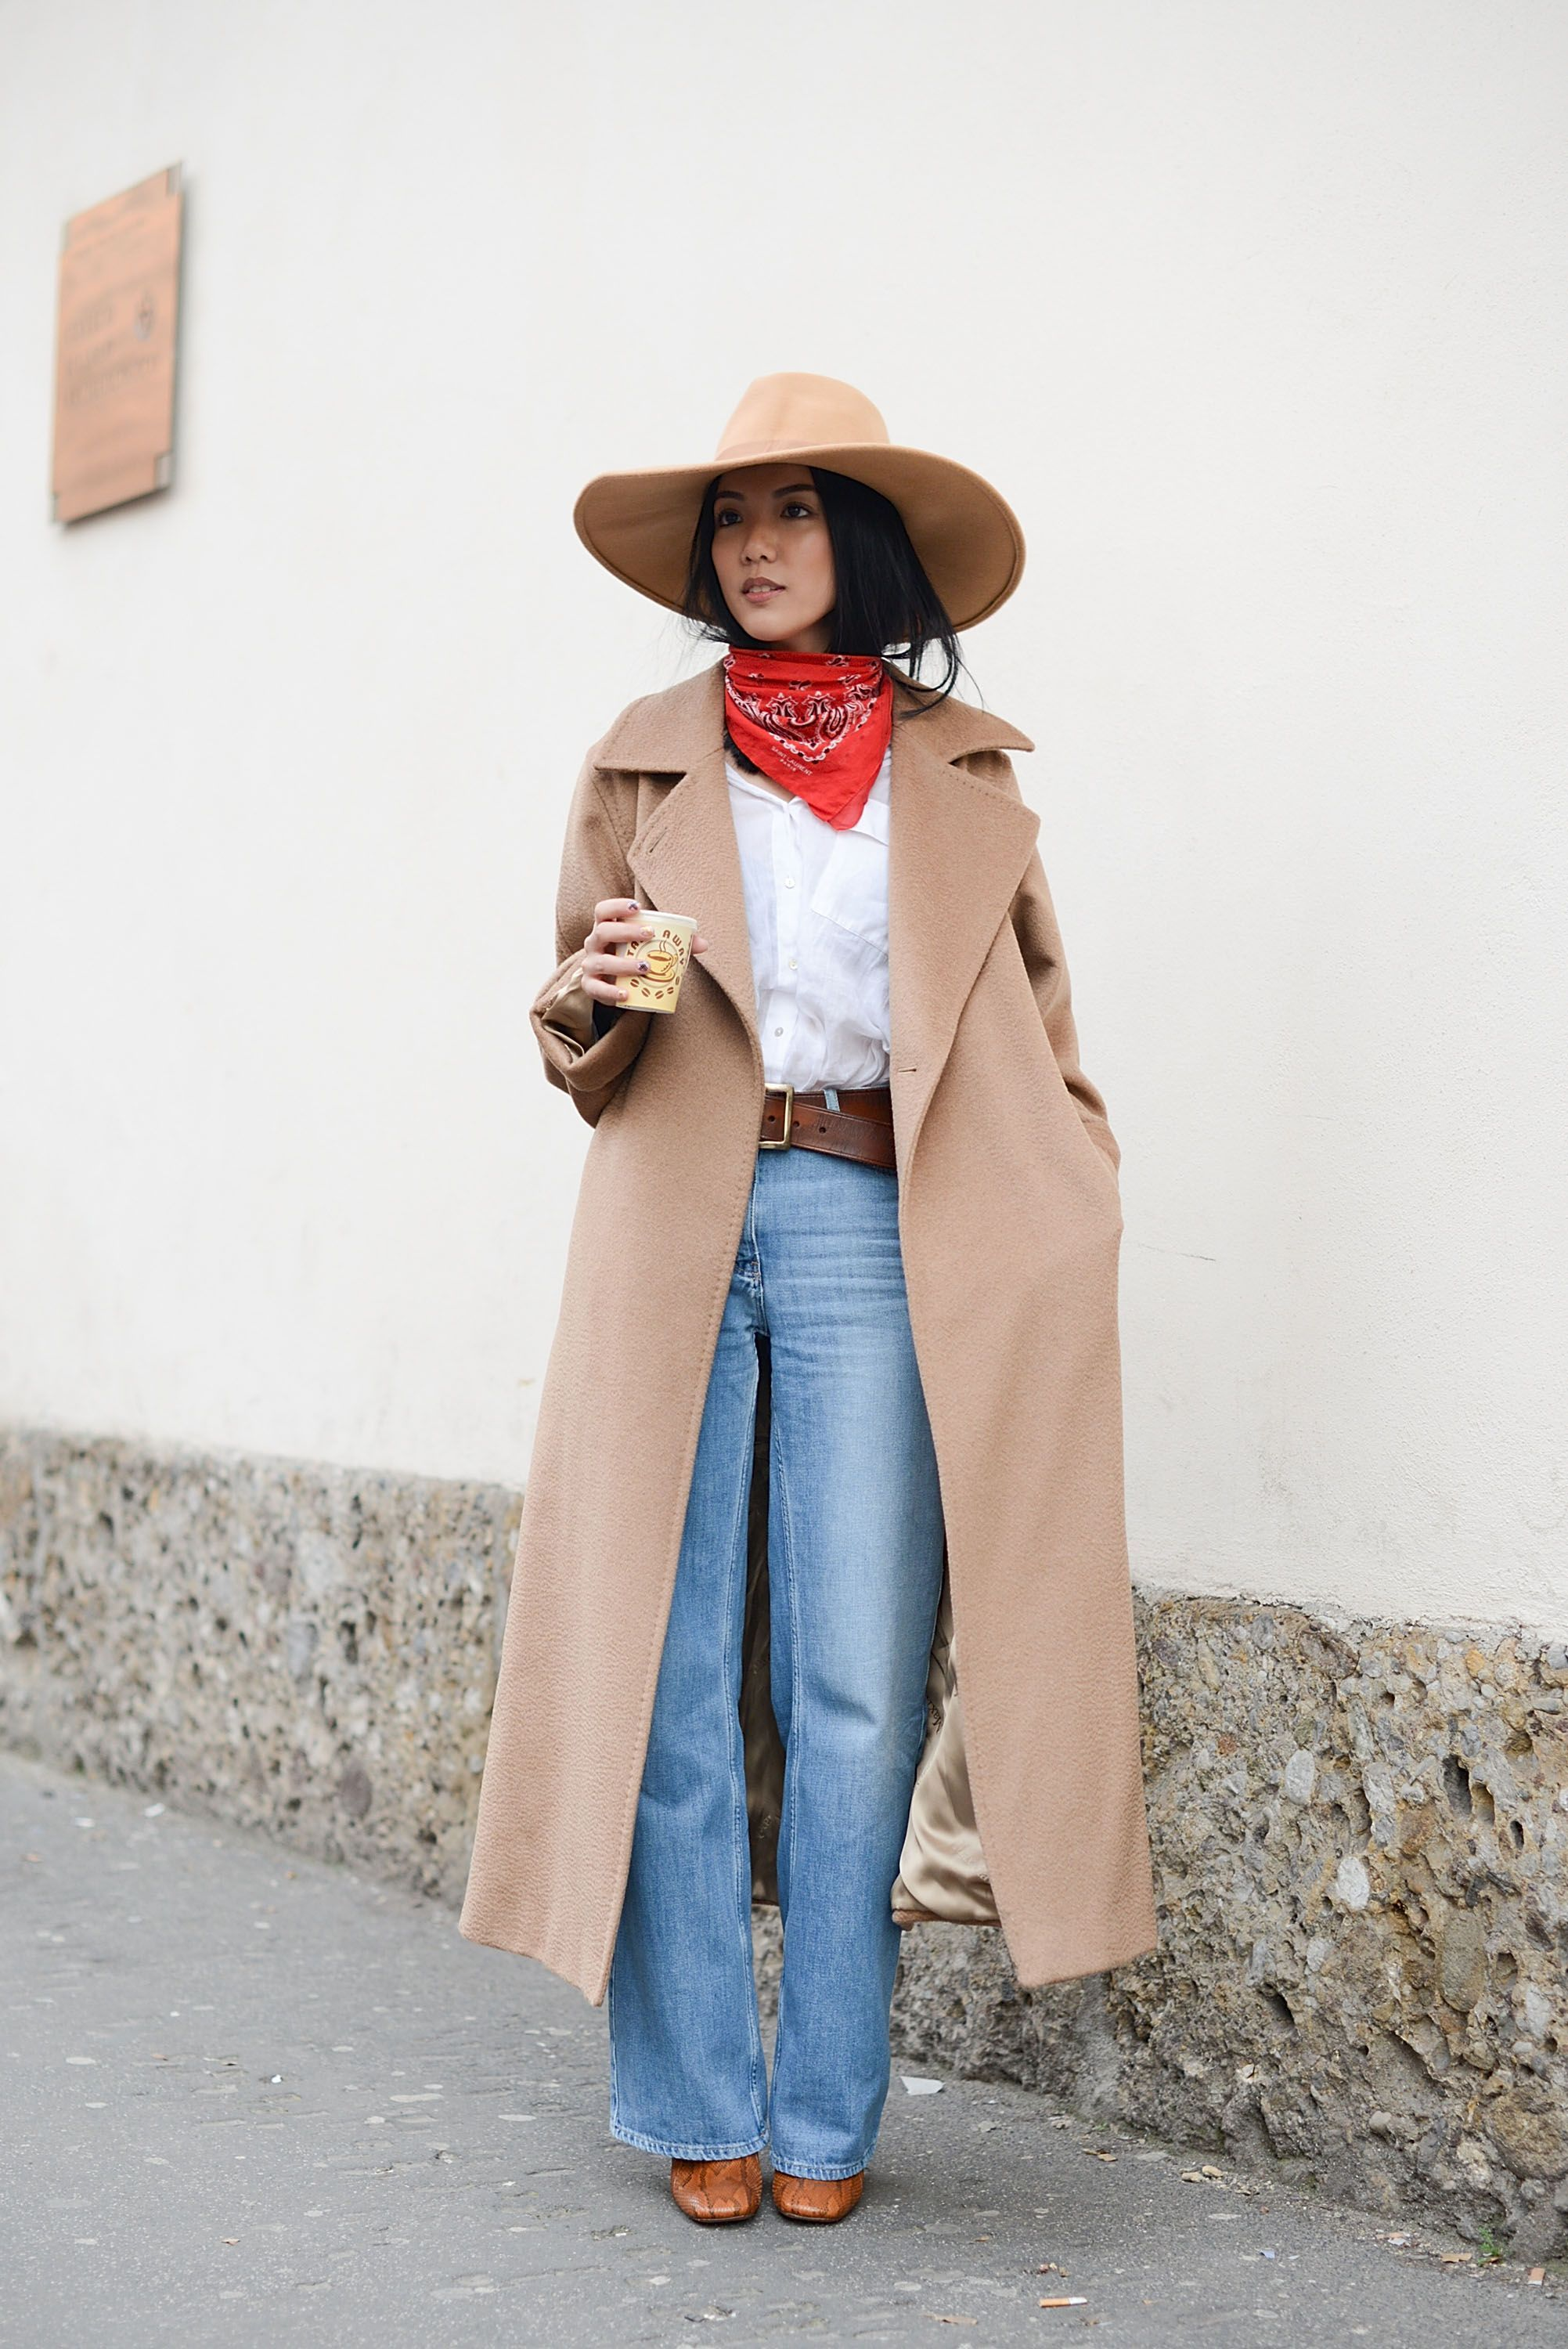 The Hat Styles to Always Keep in Your Closet